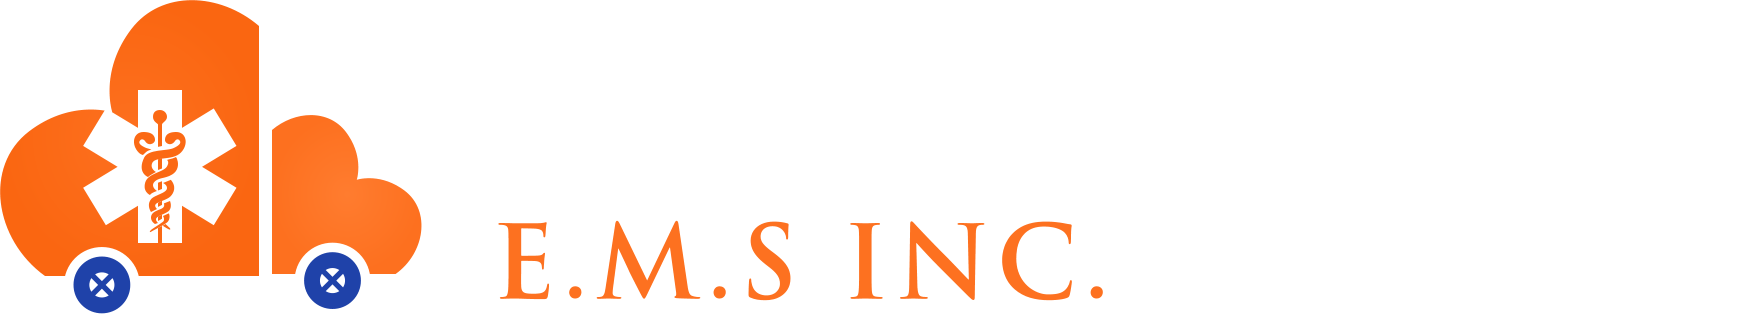 Holiness & Brothers E.M.S, Inc. - Logo